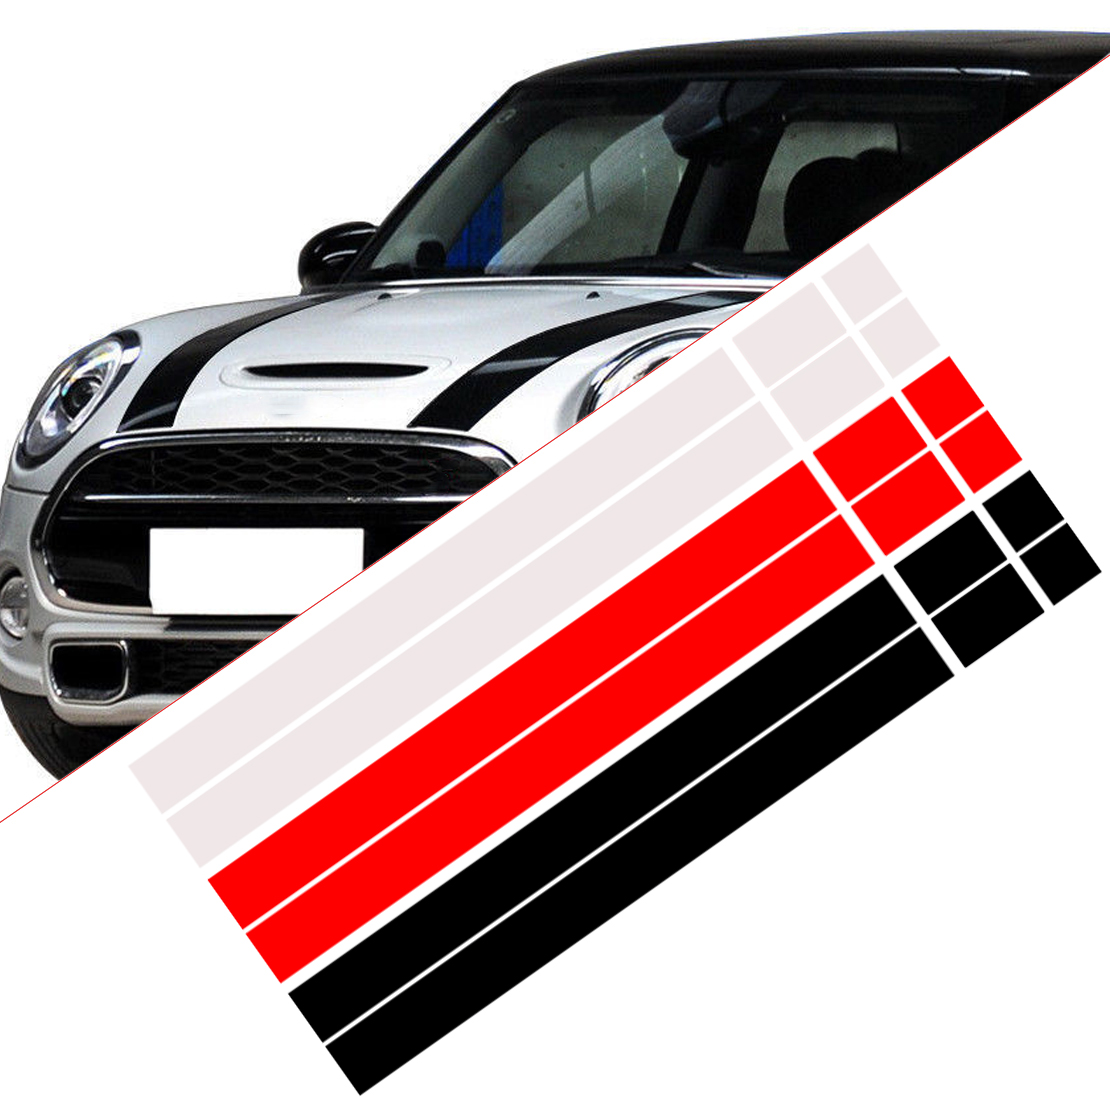 CITALL 2Pcs Car Bonnet Stripes Hood Sticker Cover Vinyl Decal Fit for MINI Cooper R50 R53 R56 R55 Black White Red dWm2754536